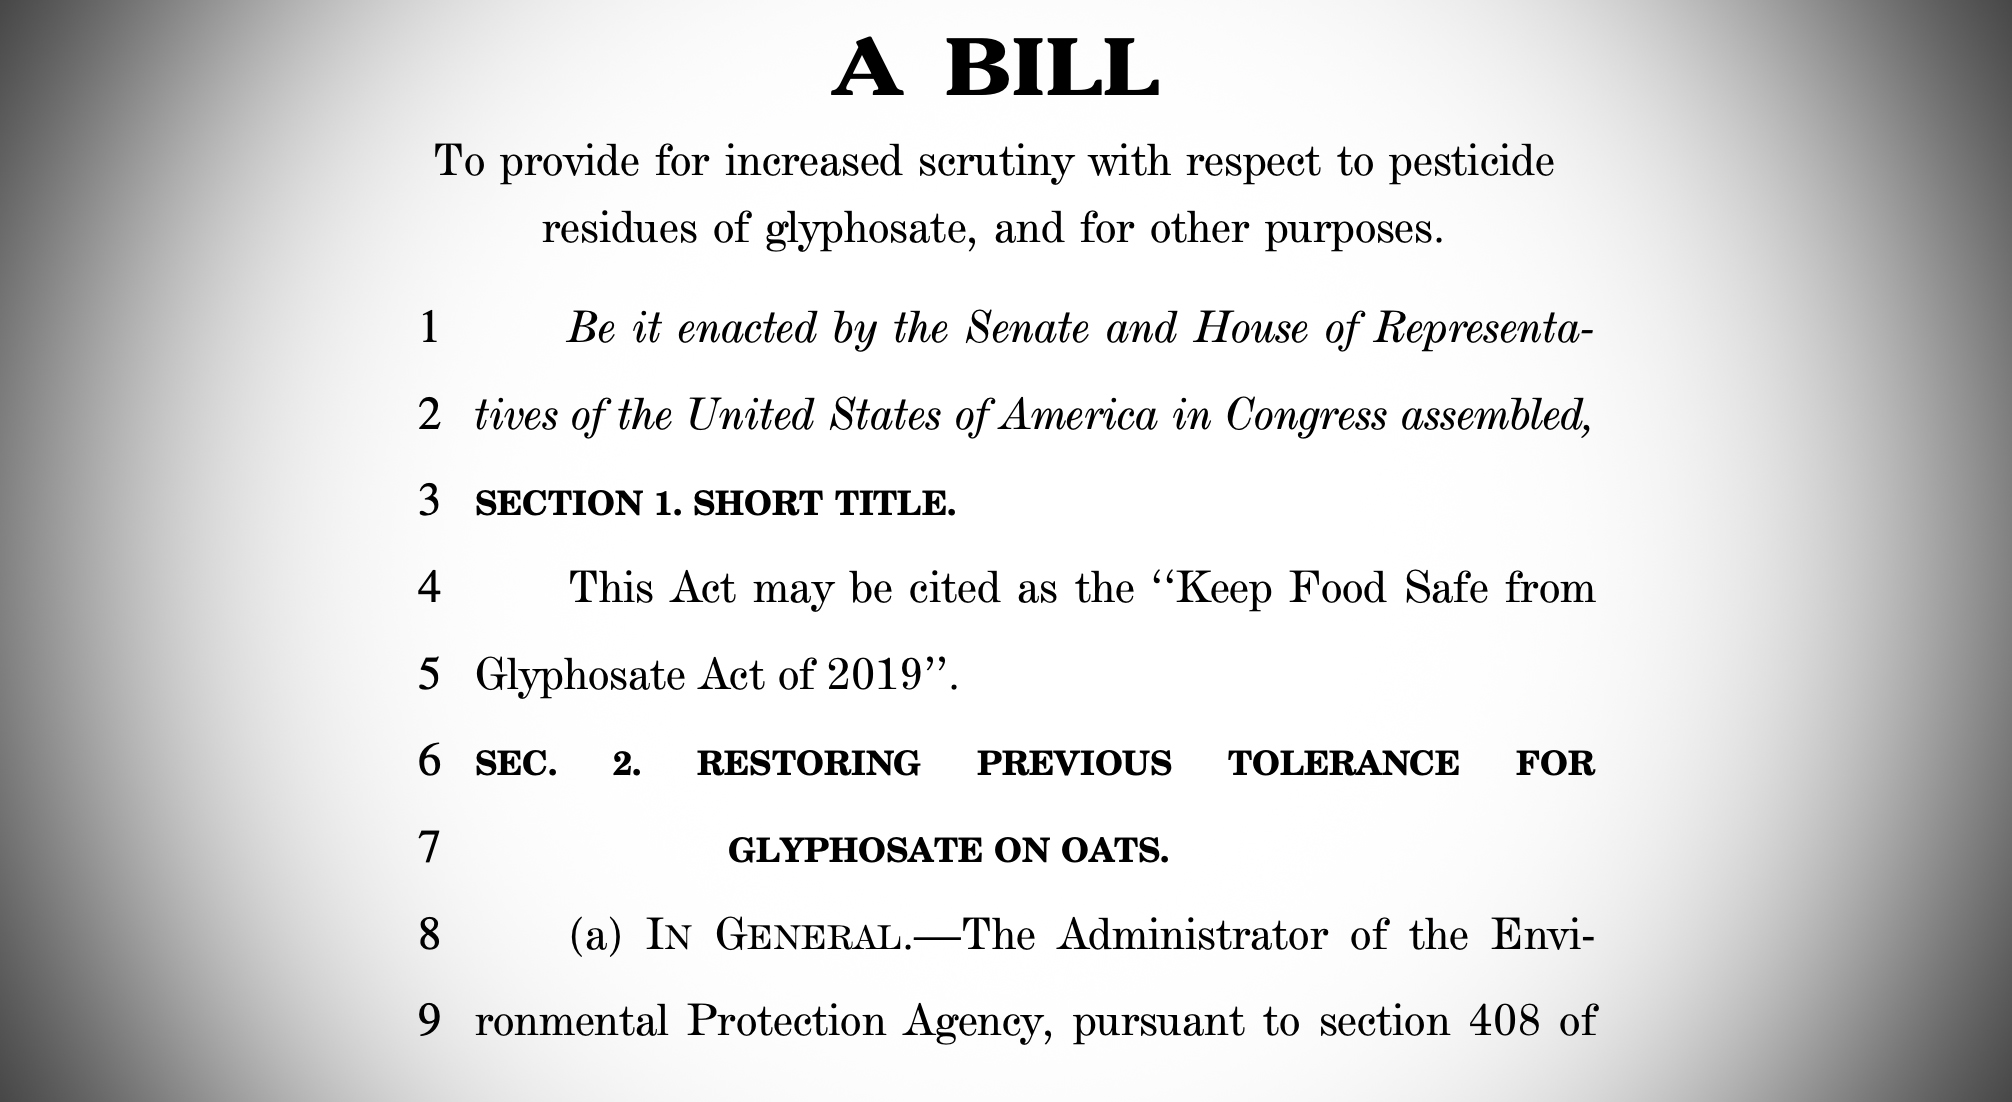 This is screenshot of the bill introduced by Rep. Rosa DeLauro.